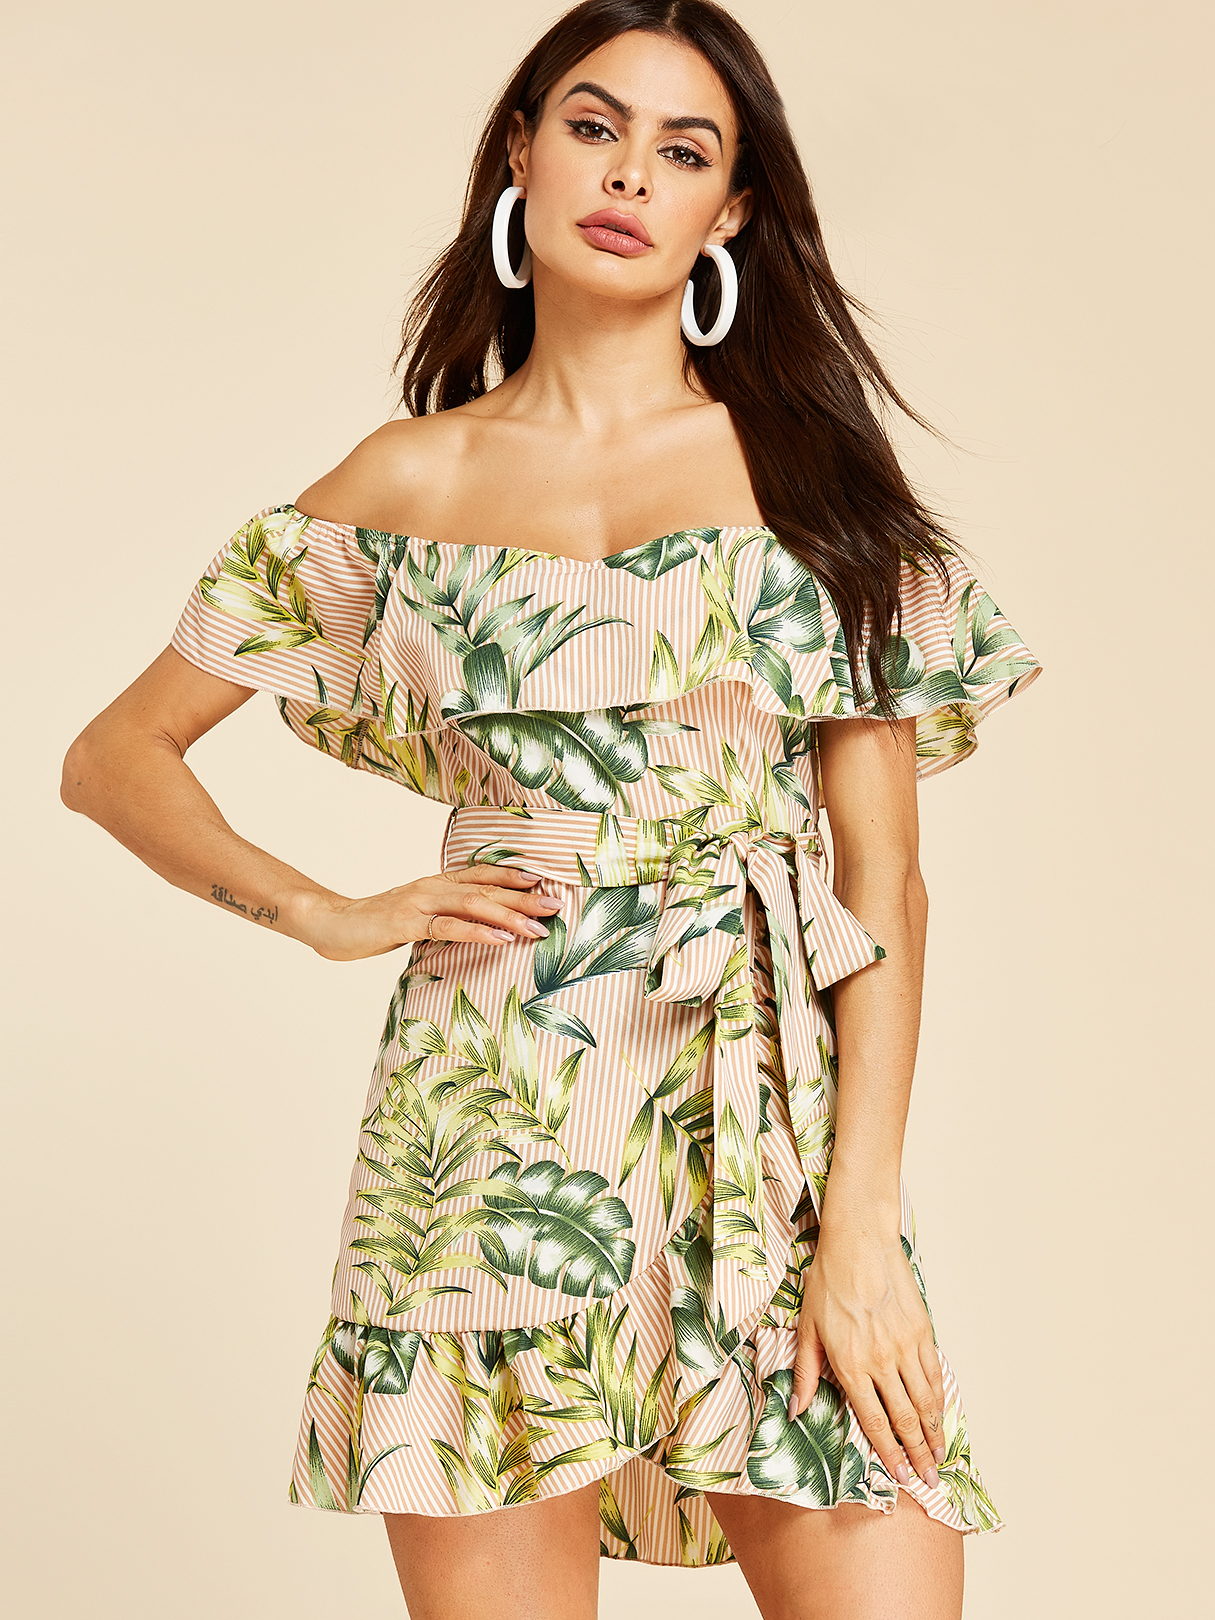 Khaki Off-the-shoulder Overlay Floral Print Dress